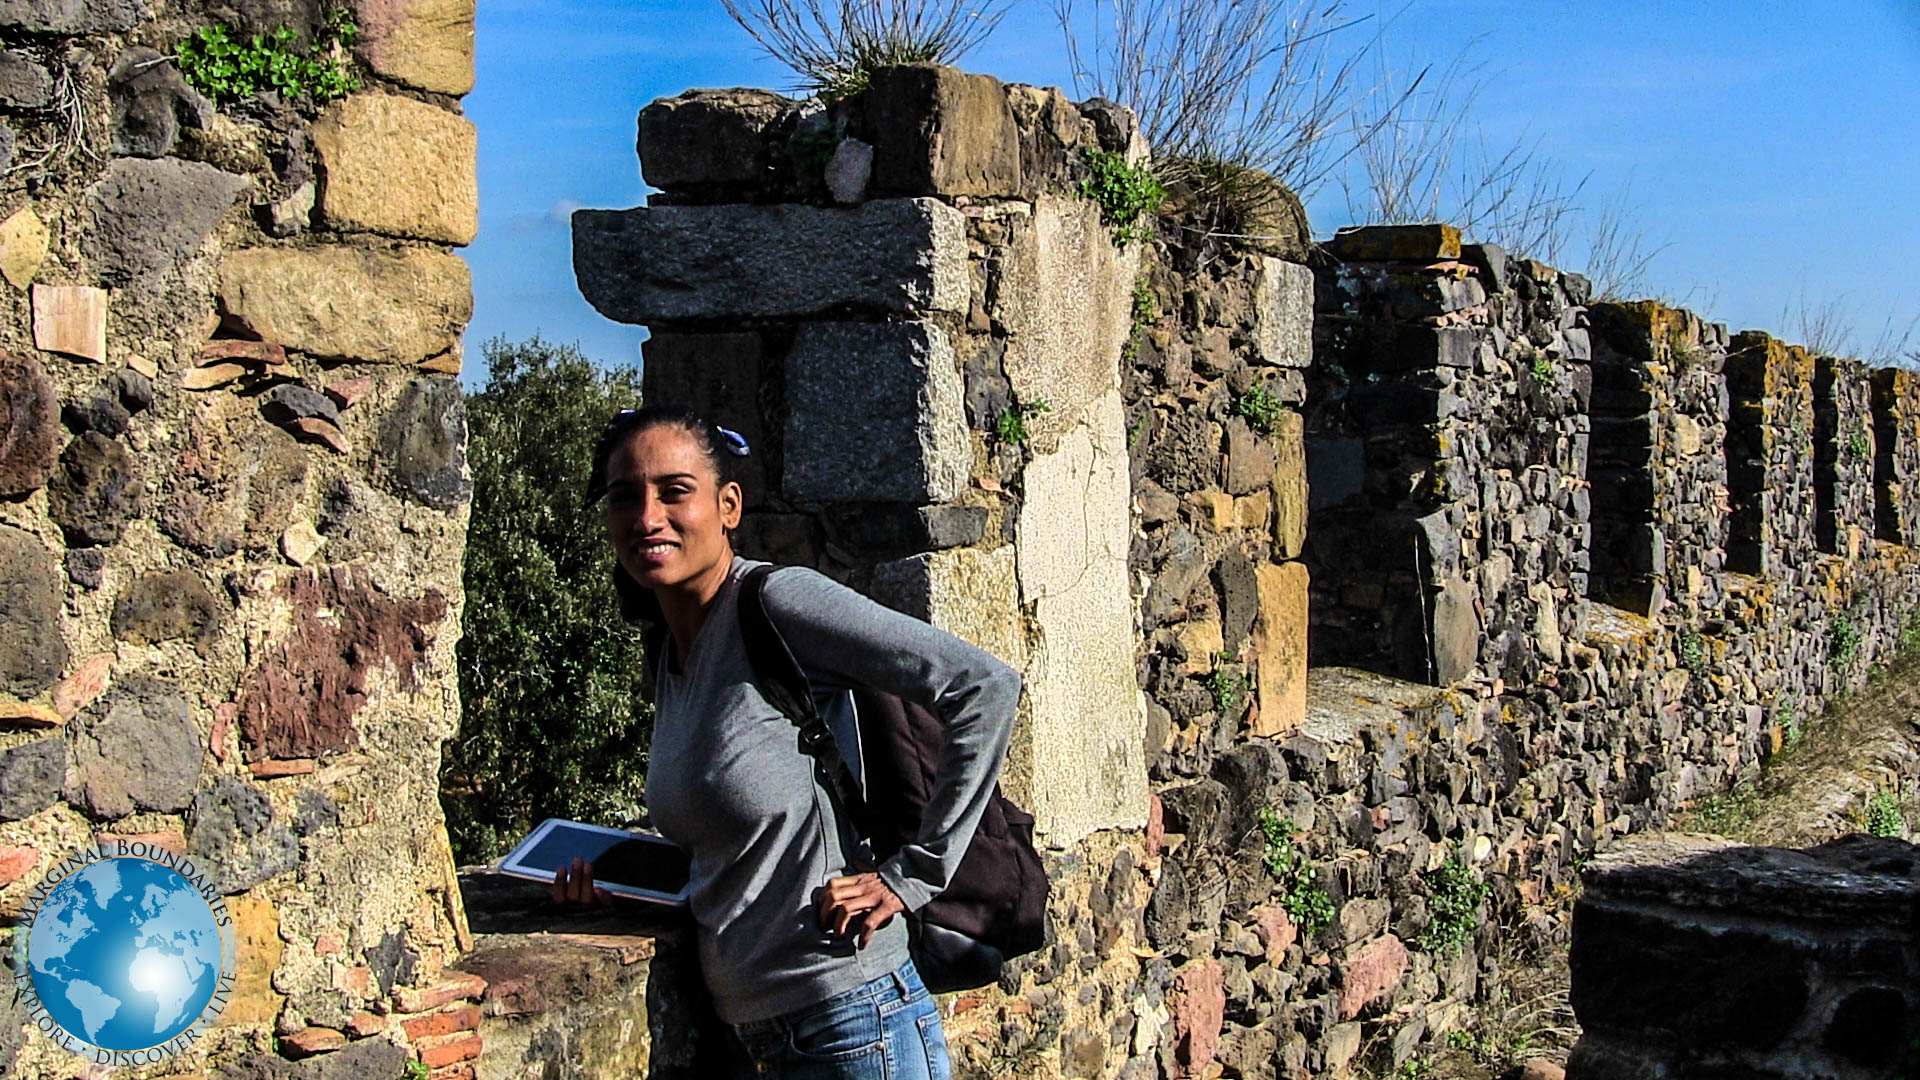 Cris on the ramparts of the castle